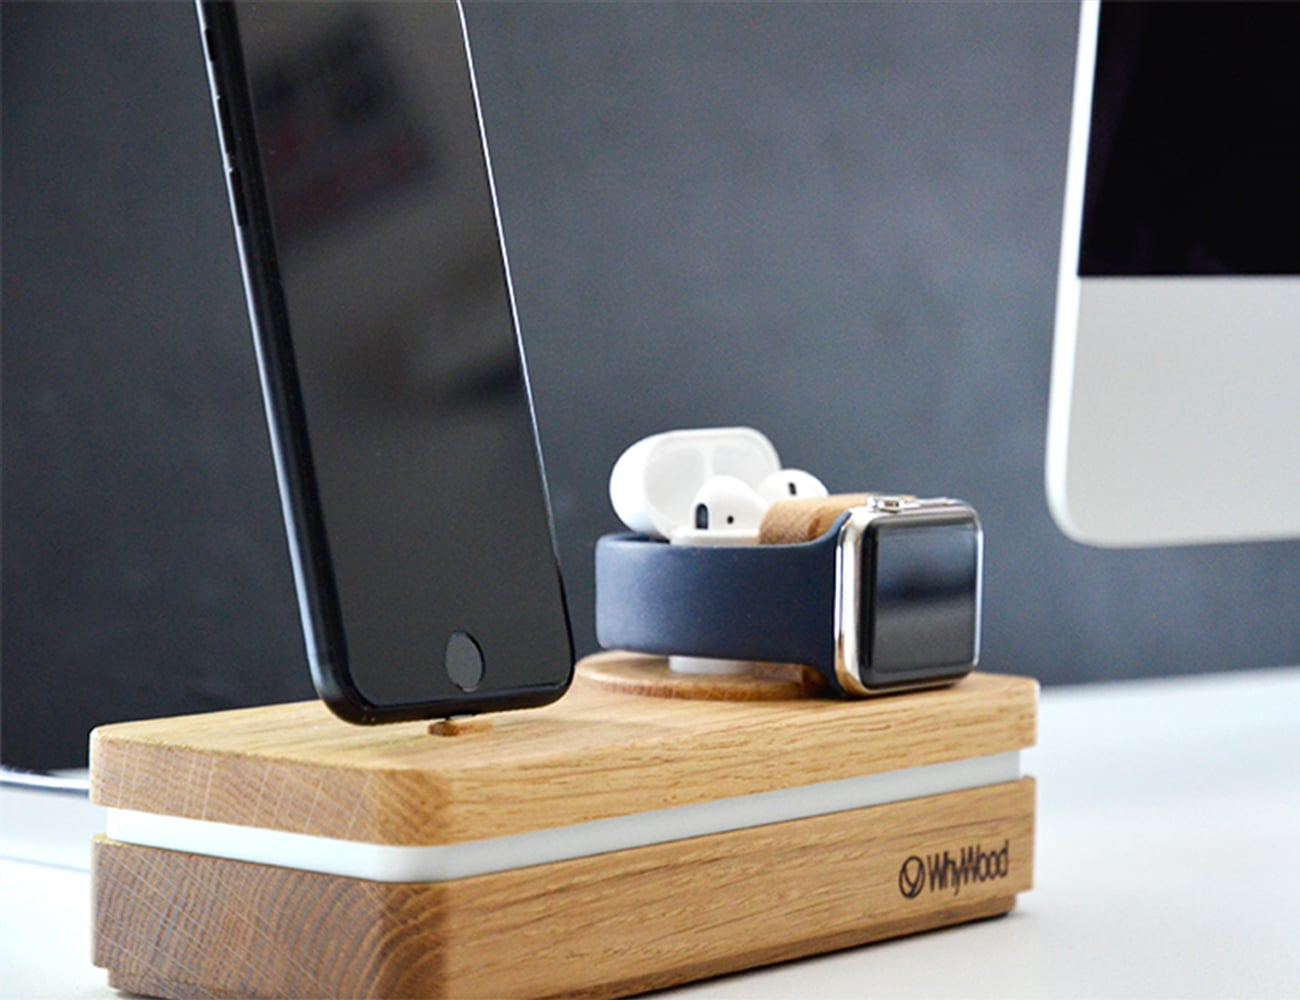 Dockit Docking Station For Apple Devices 187 Gadget Flow